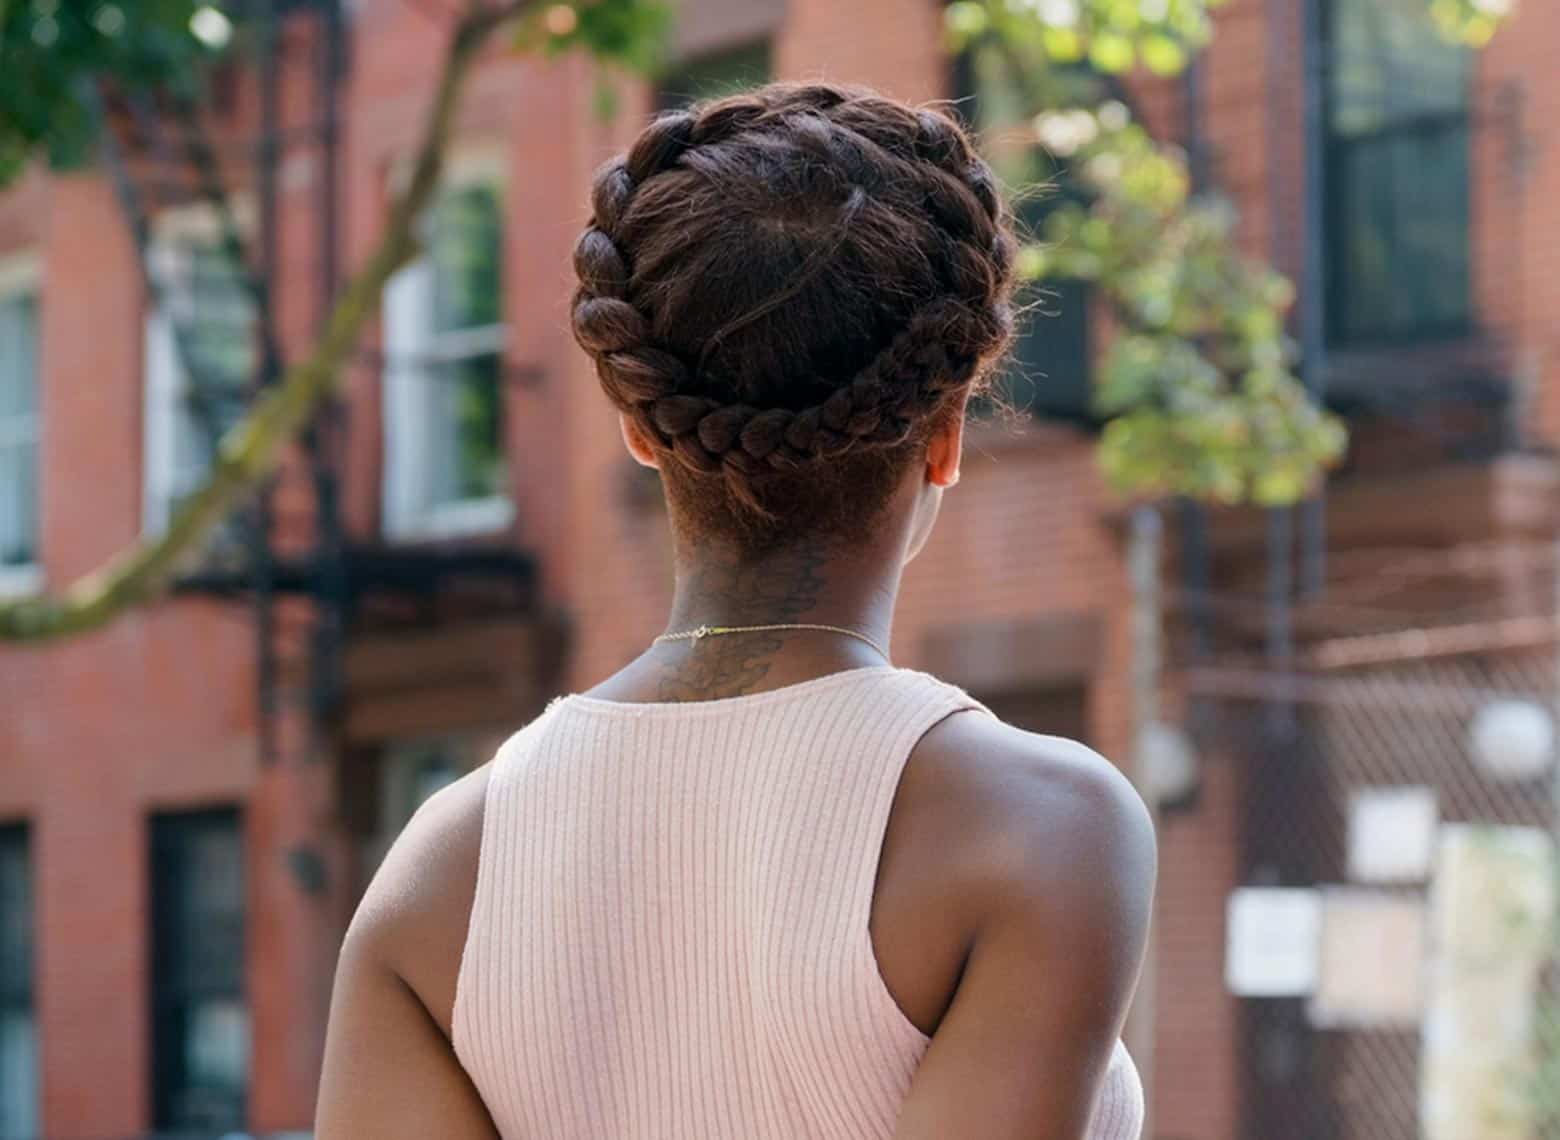 woman with crown braid